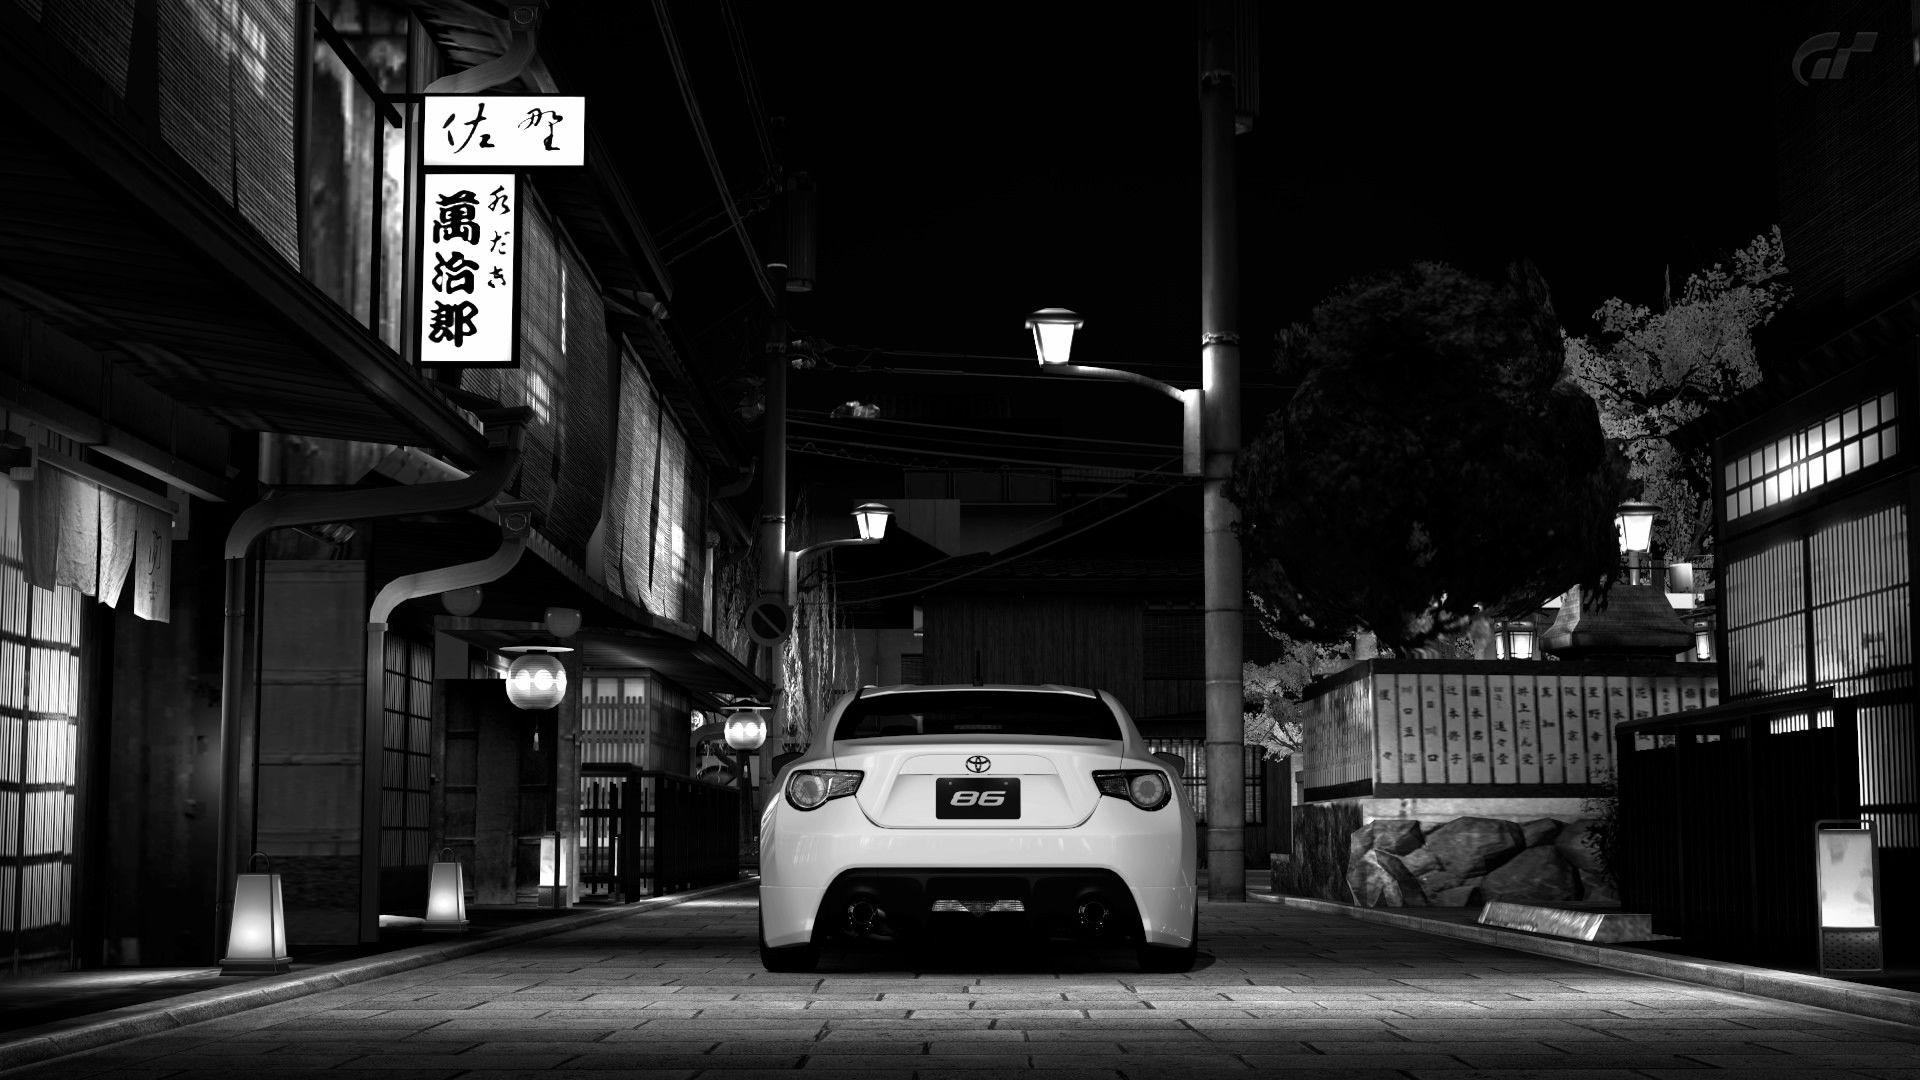 Toyota gt 86 wallpapers wallpaper cave - Car wallpaper black and white ...